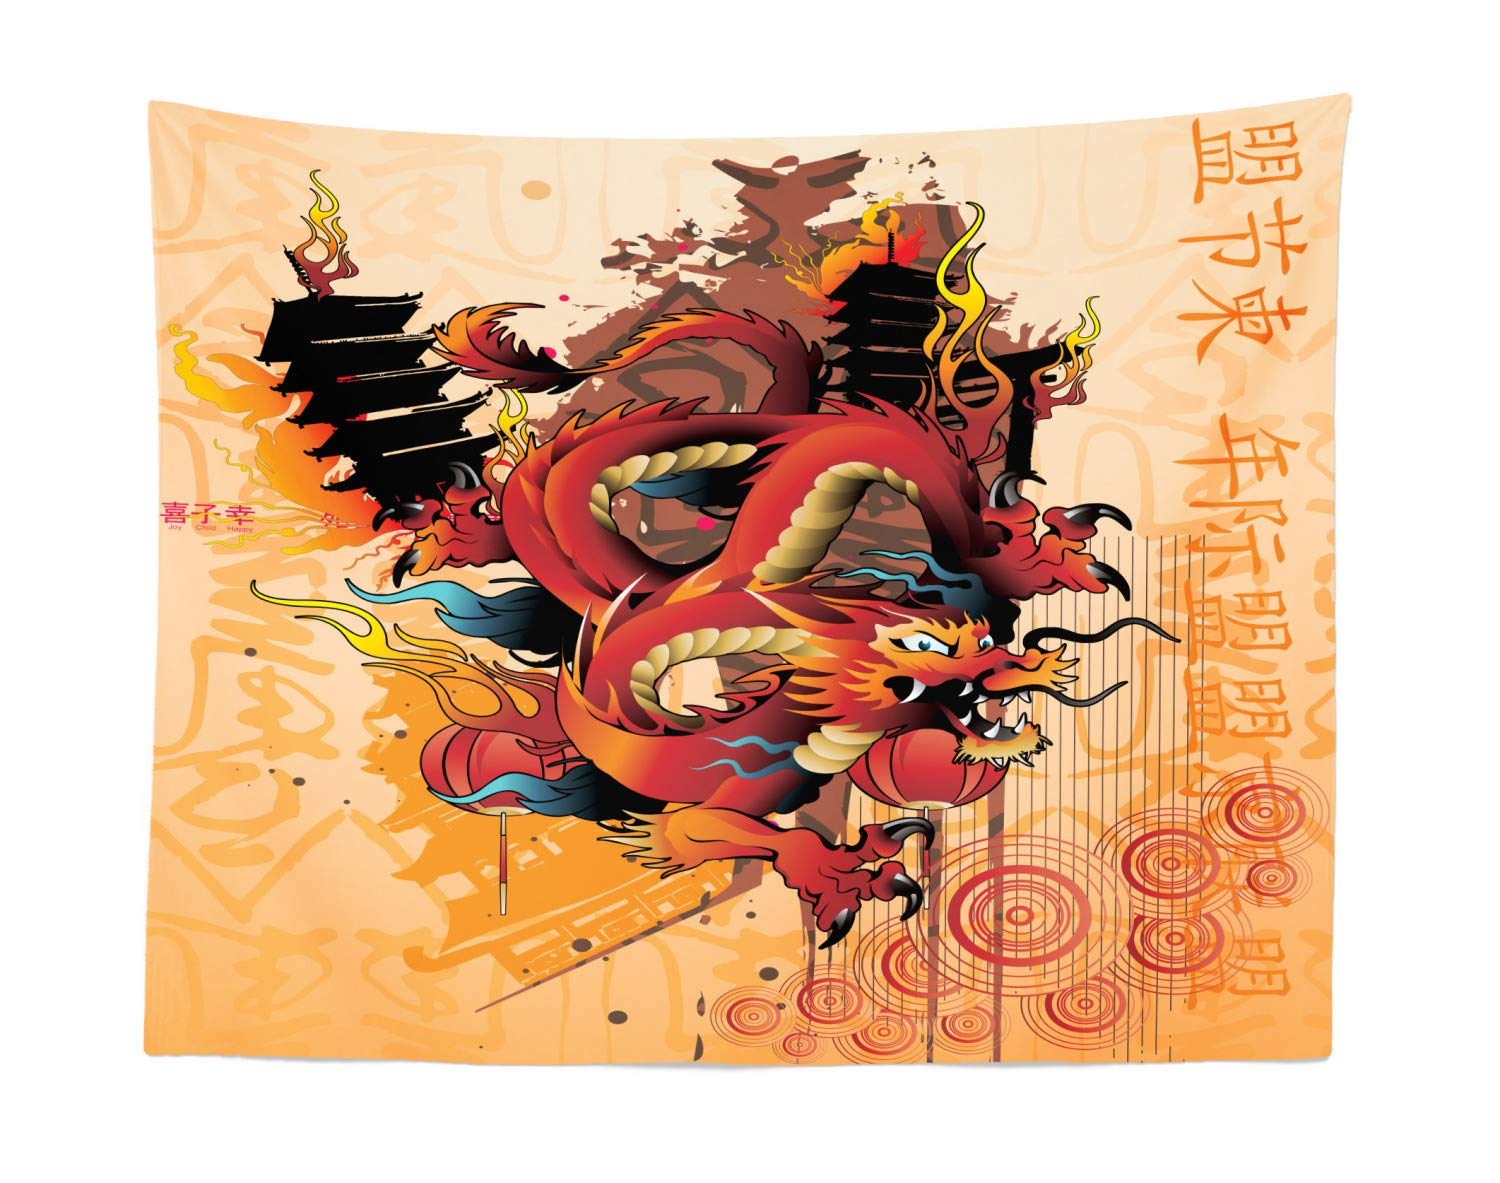 Fabric Wall Hanging Decor for Bedroom Living Room Dorm Multicolor micwid/_68750/_45x30 Traditional Oriental Pattern with Fuji Mountain and Japanese Waves Composition Print Lunarable Tokyo Tapestry 45 W X 30 L inches